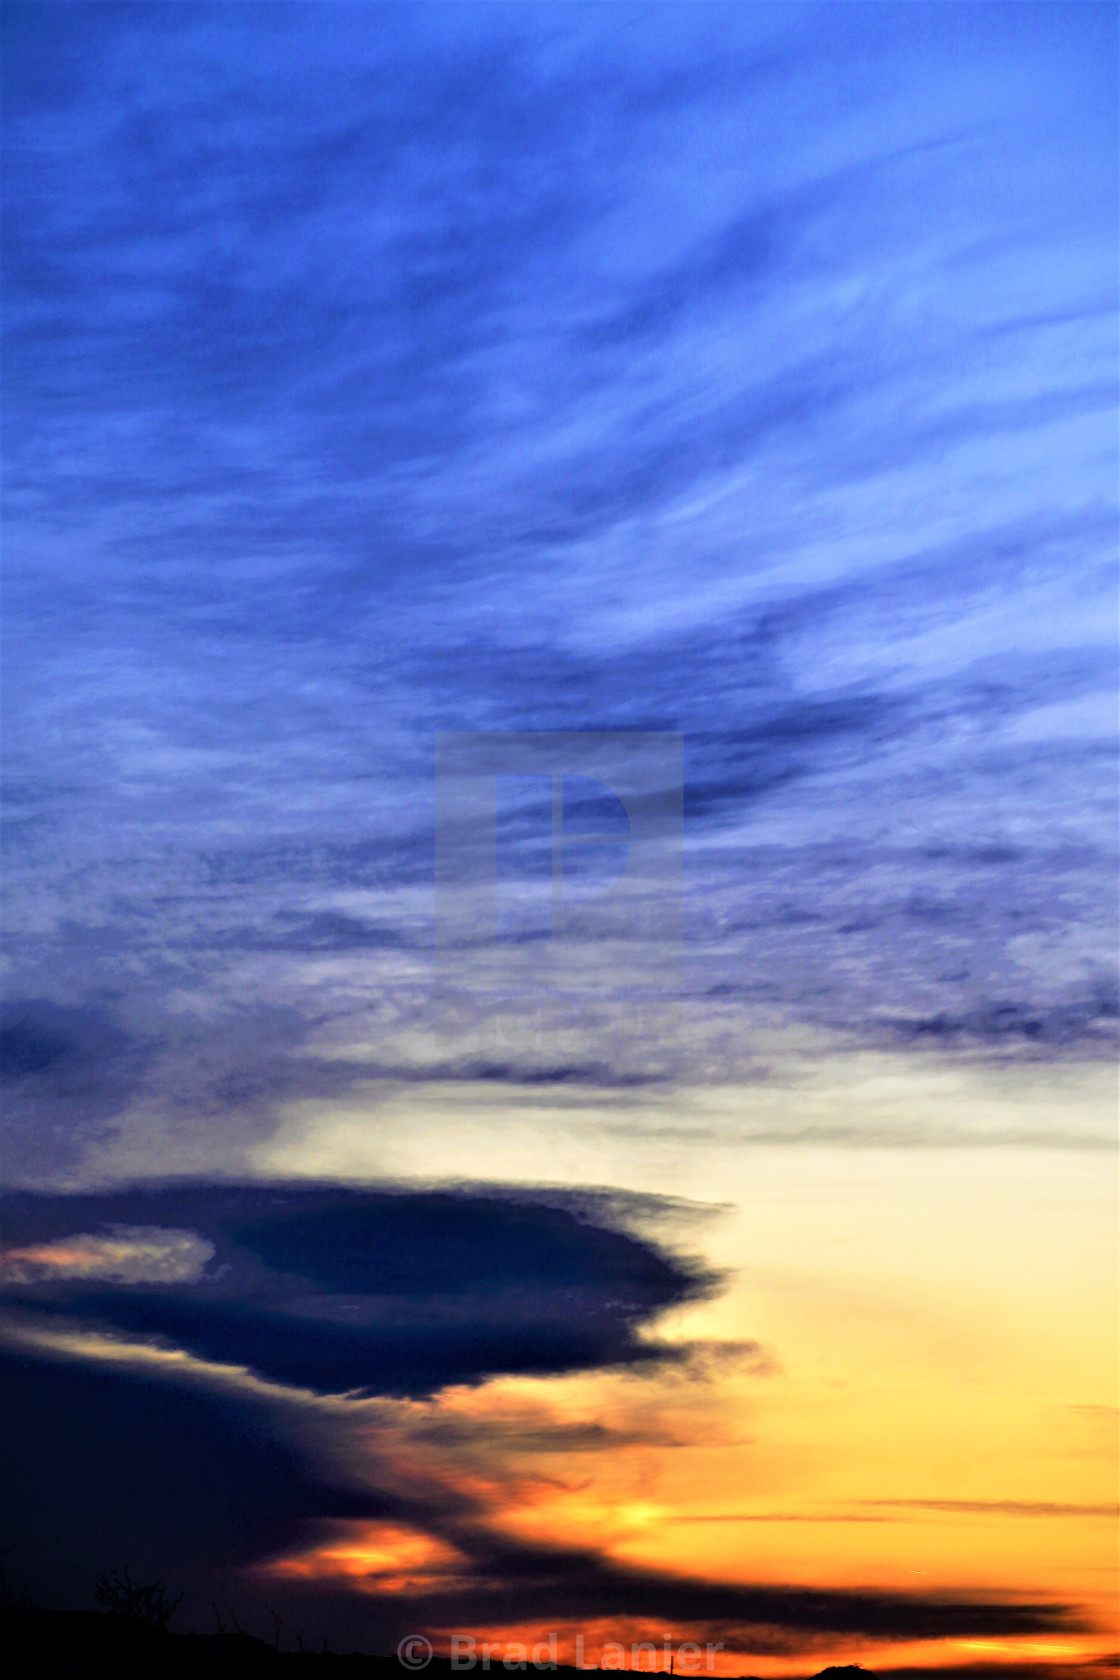 Liquid sky series photo 1 - License, download or print for